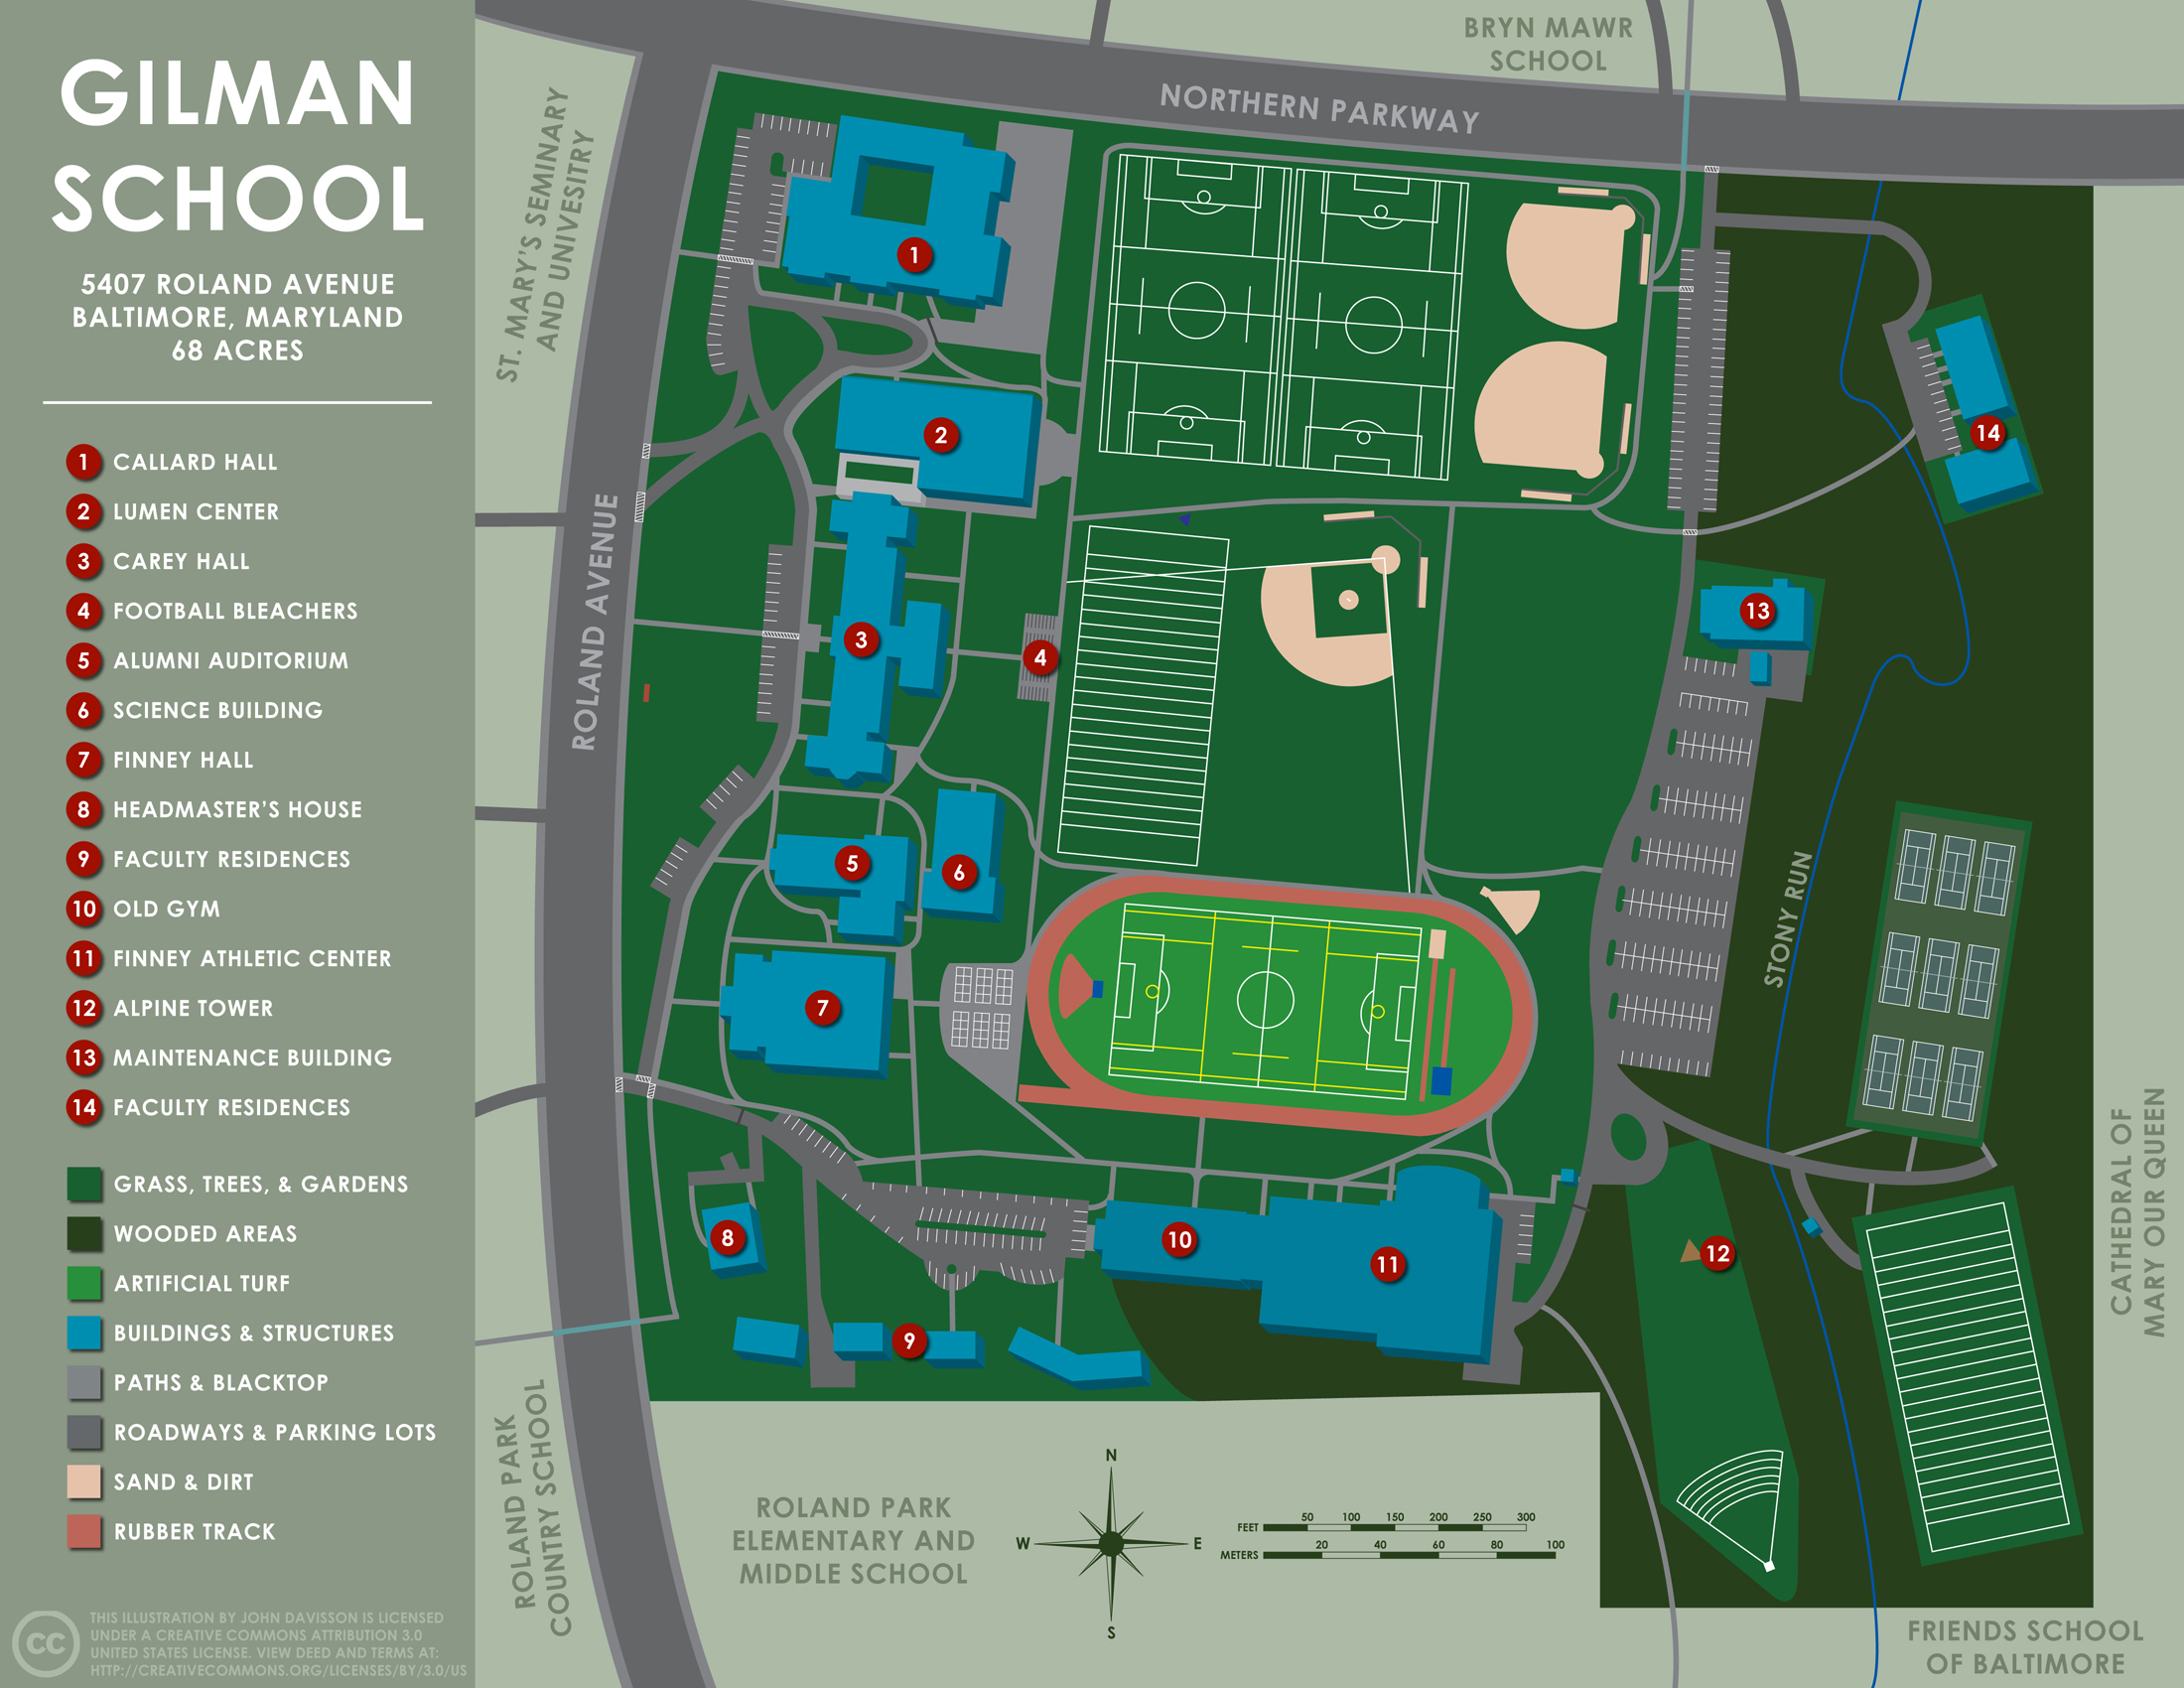 School Campus Map.File Gilman School Campus Map Med Jpg Wikimedia Commons